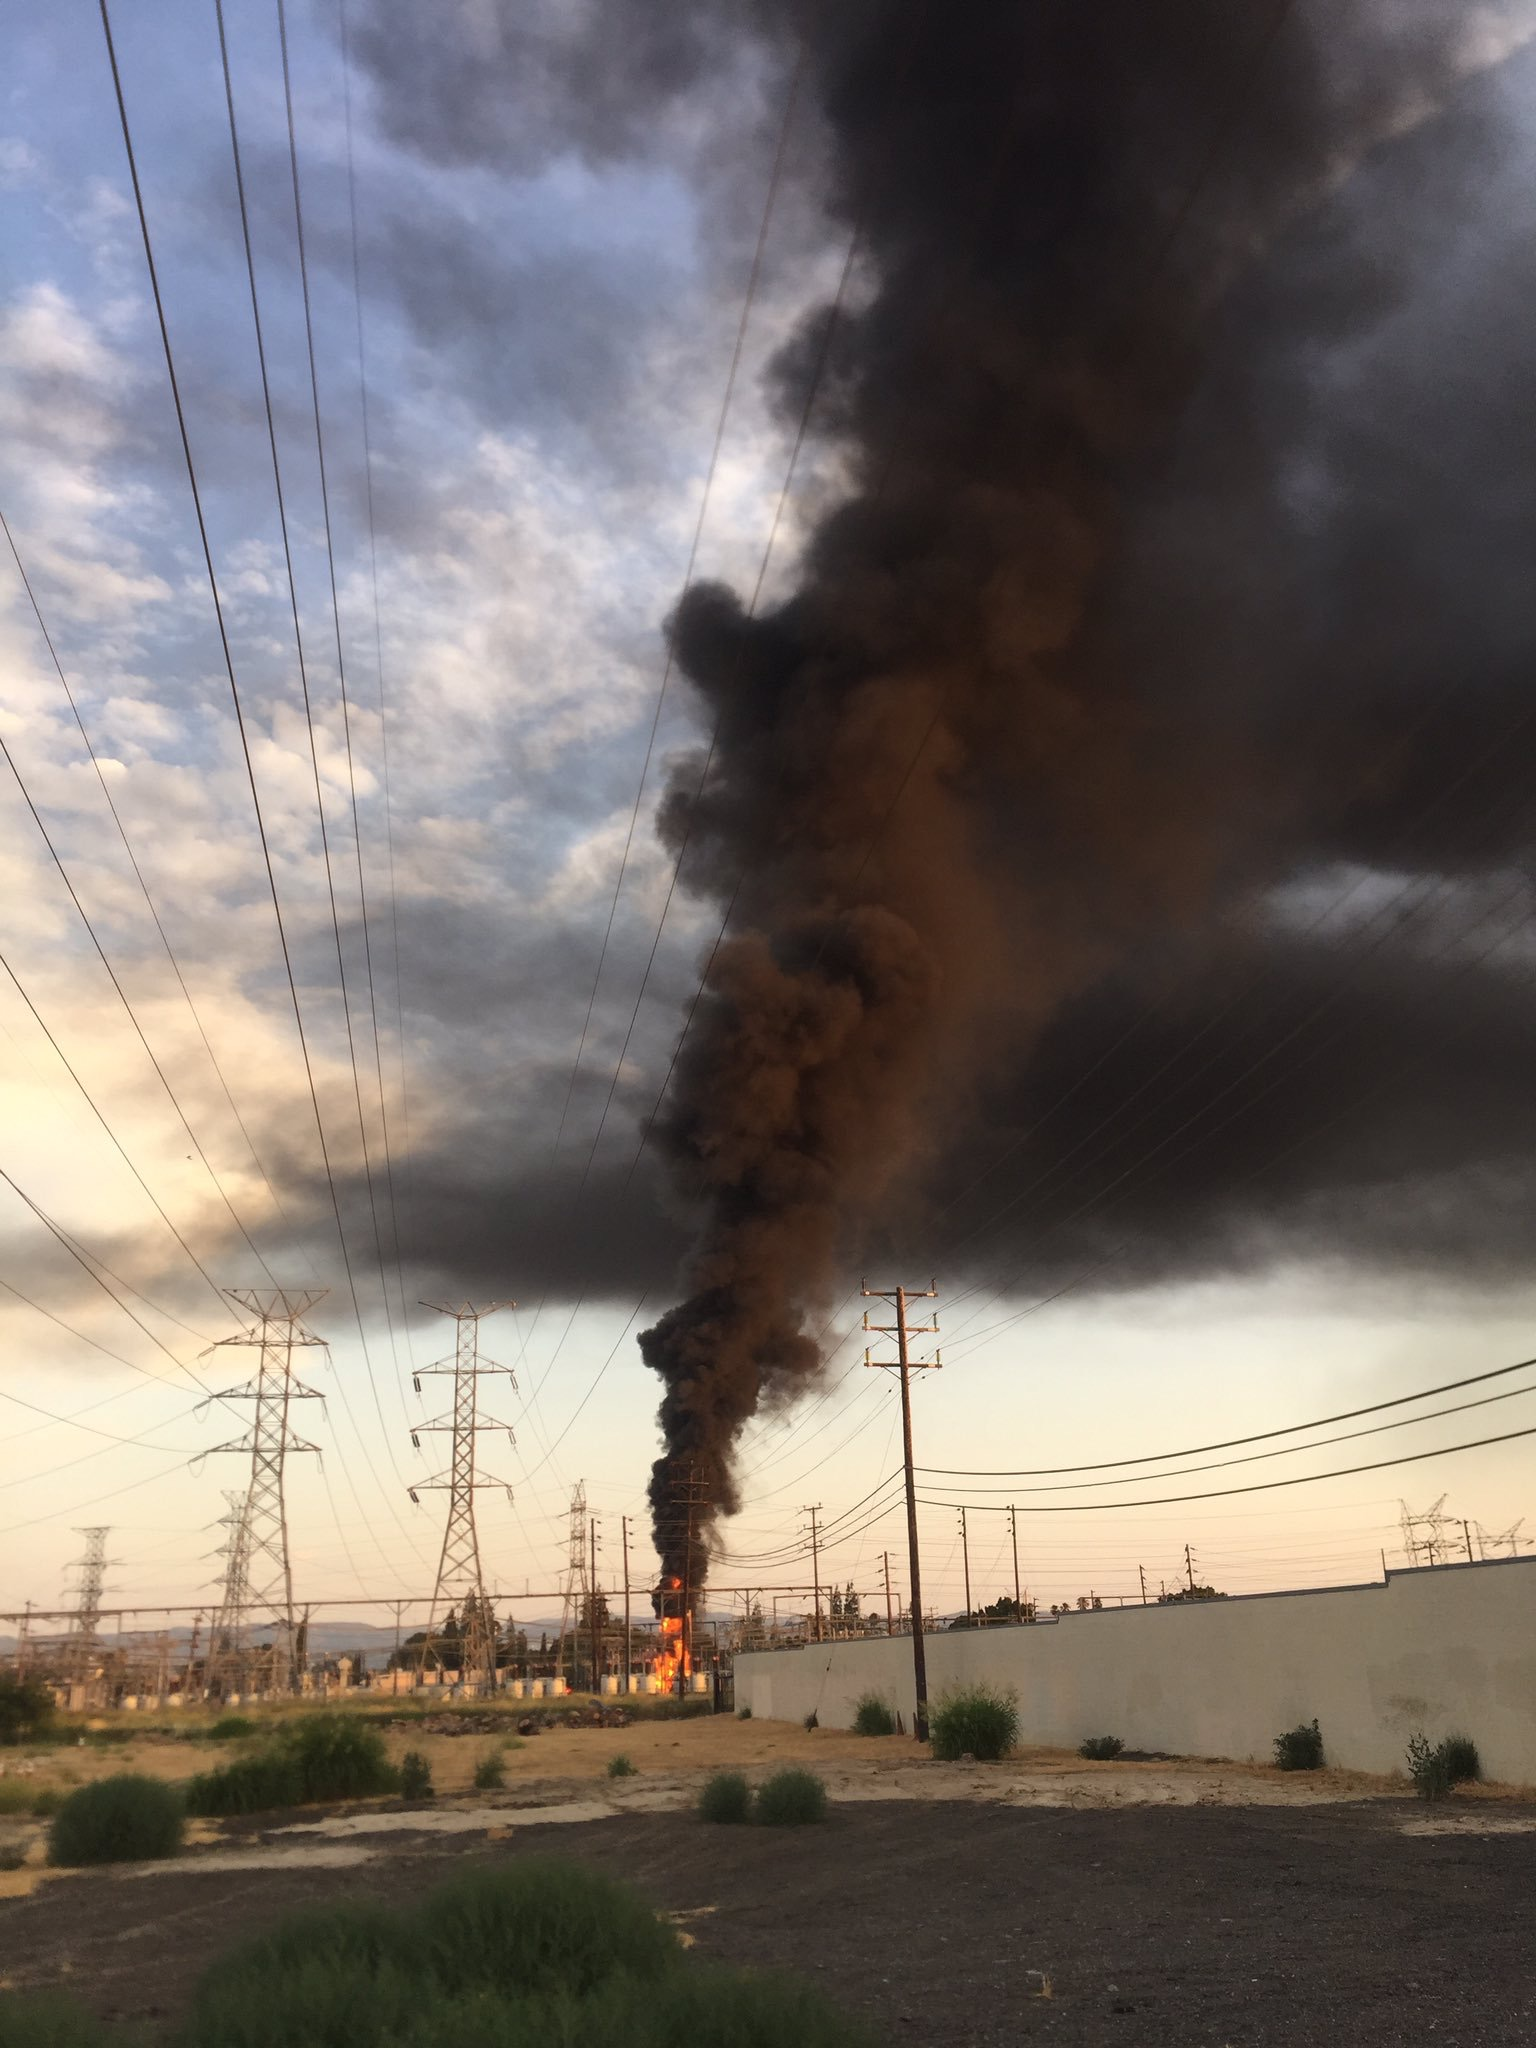 Photo of Budgetary neglect leaves 140K without power in Los Angeles